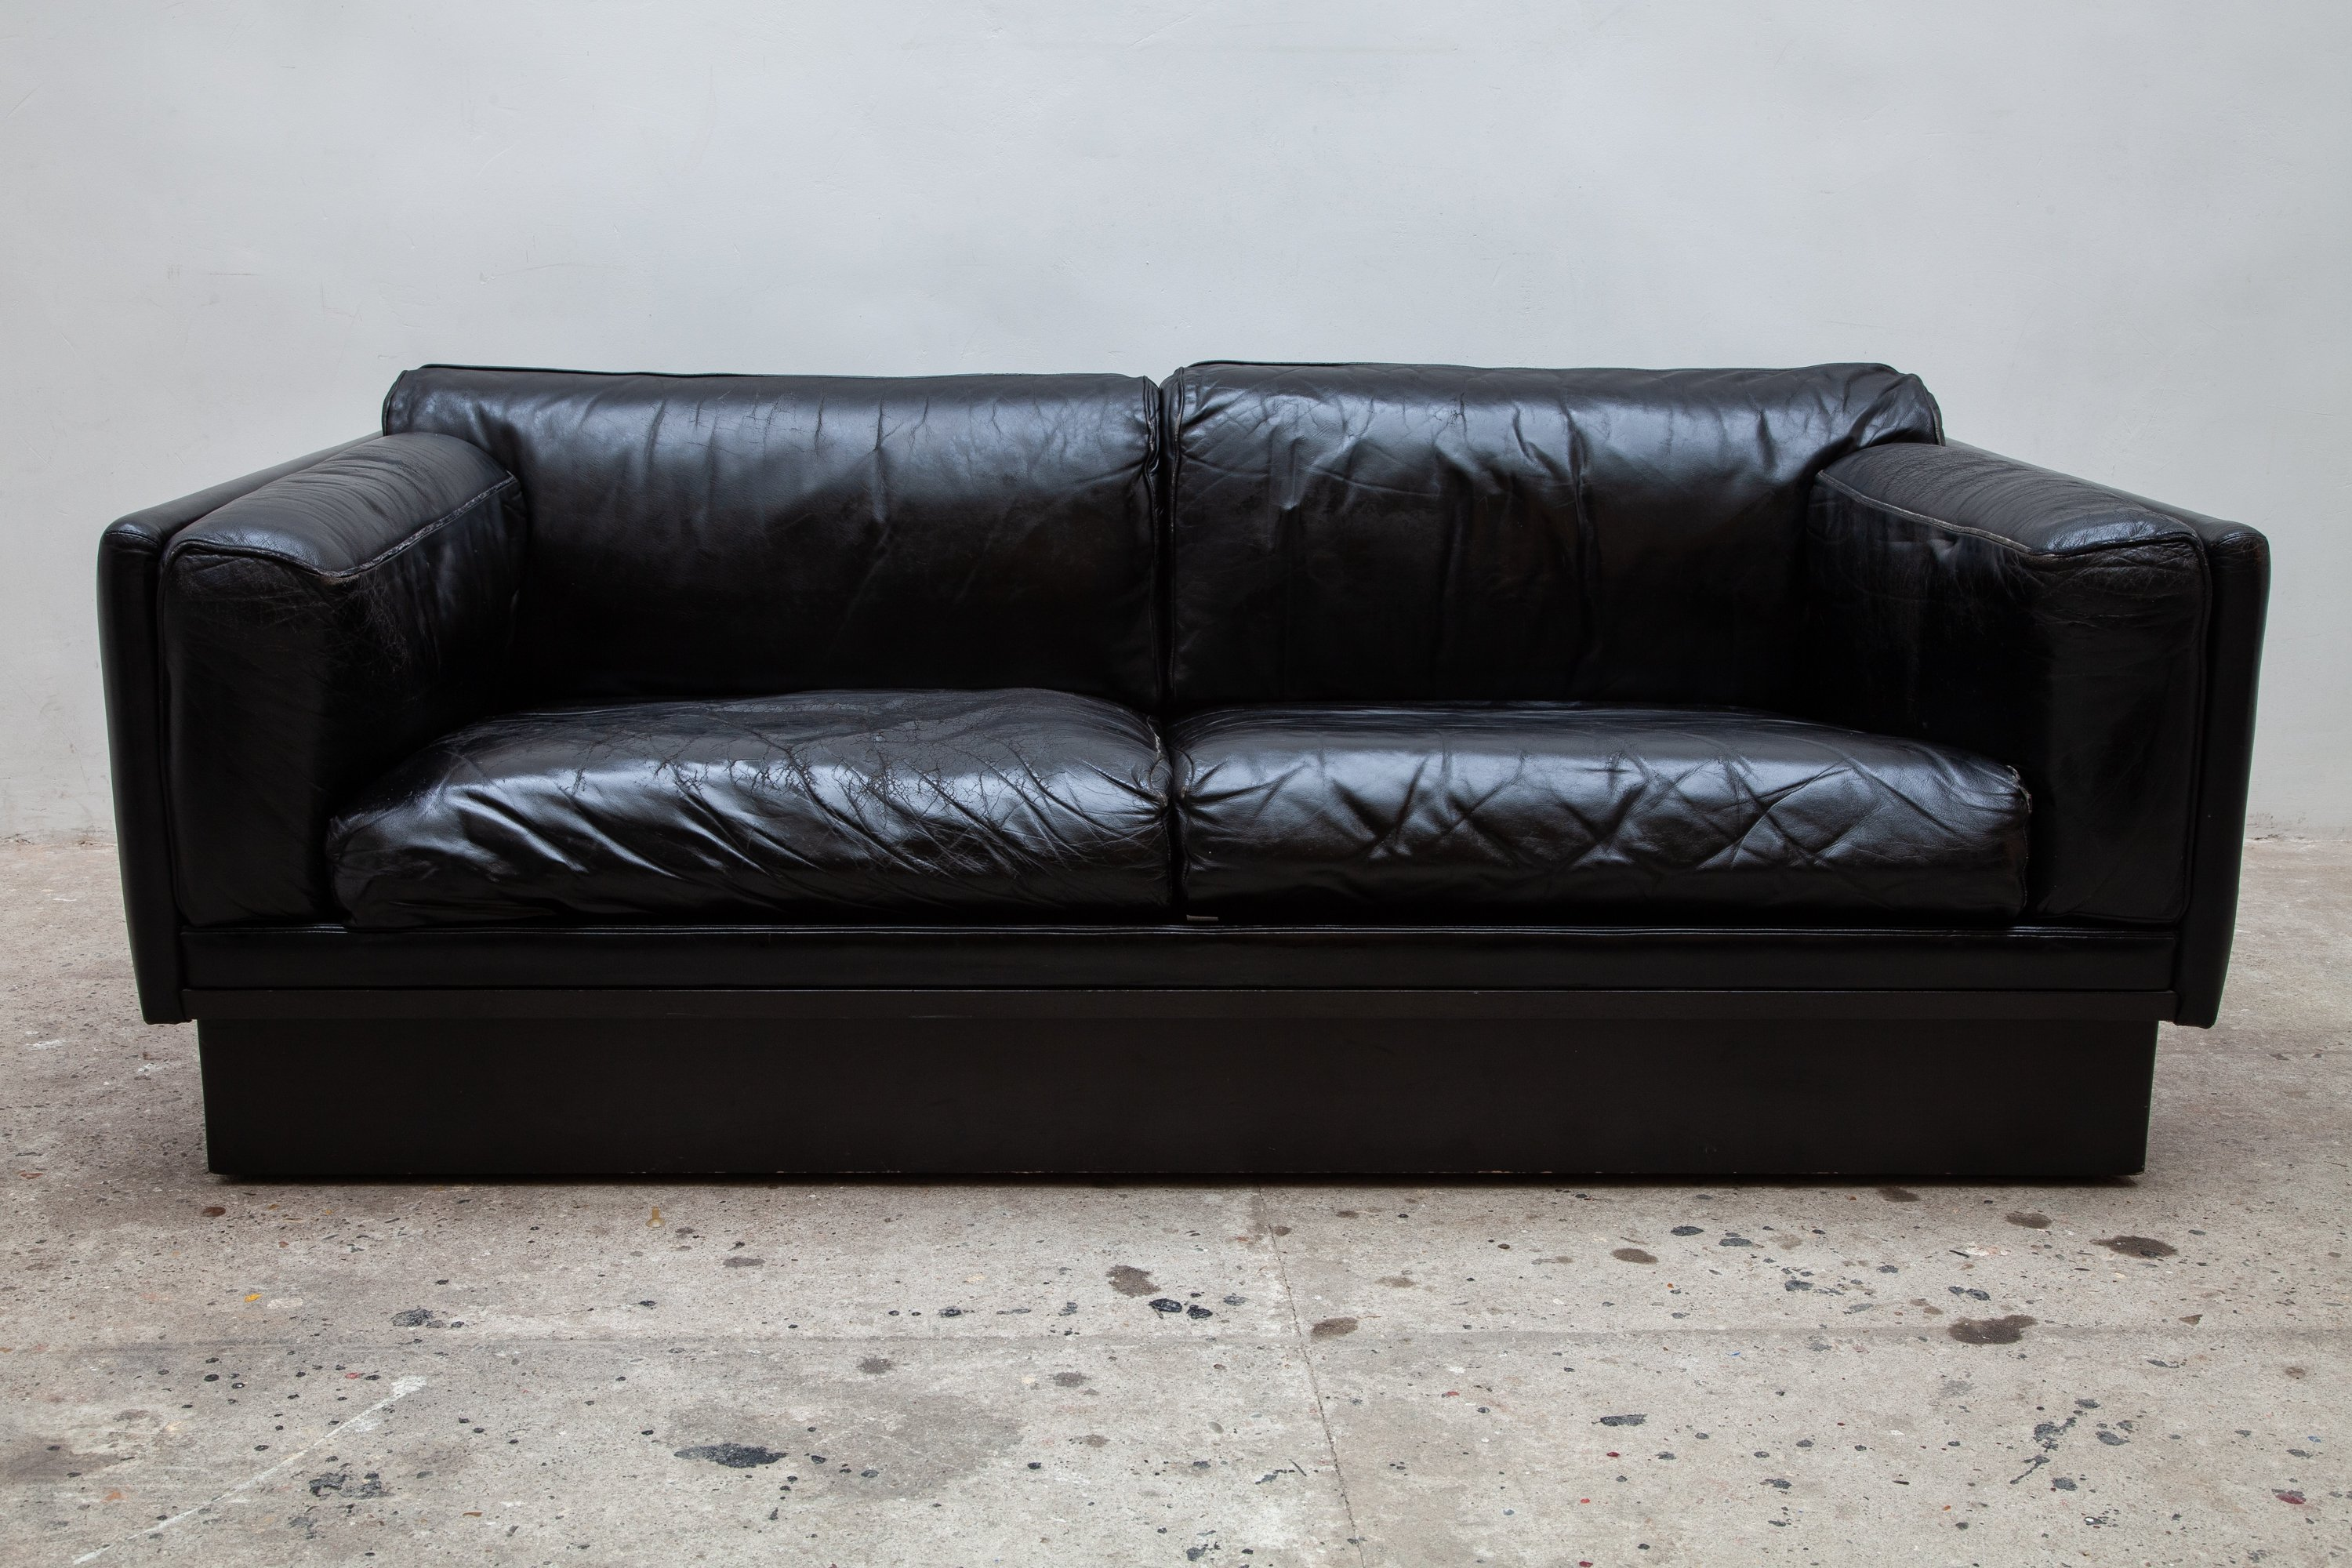 set of two black leather sofas by durlet belgium 1970s